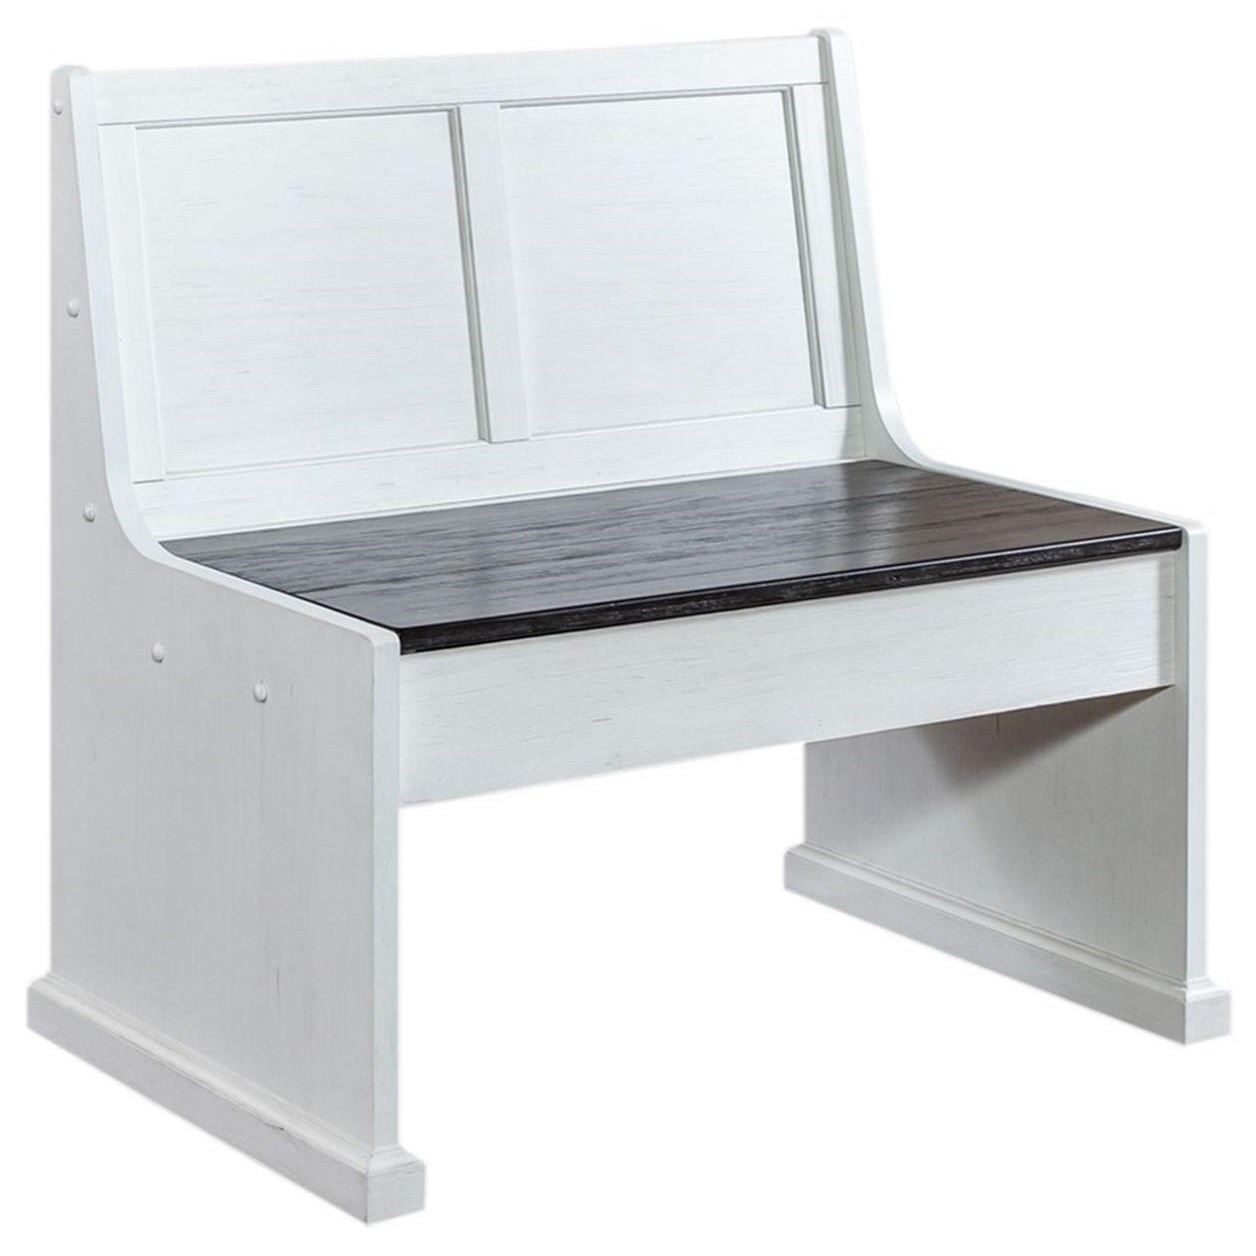 Allyson Park 37 Inch Nook Bench by Freedom Furniture at Ruby Gordon Home